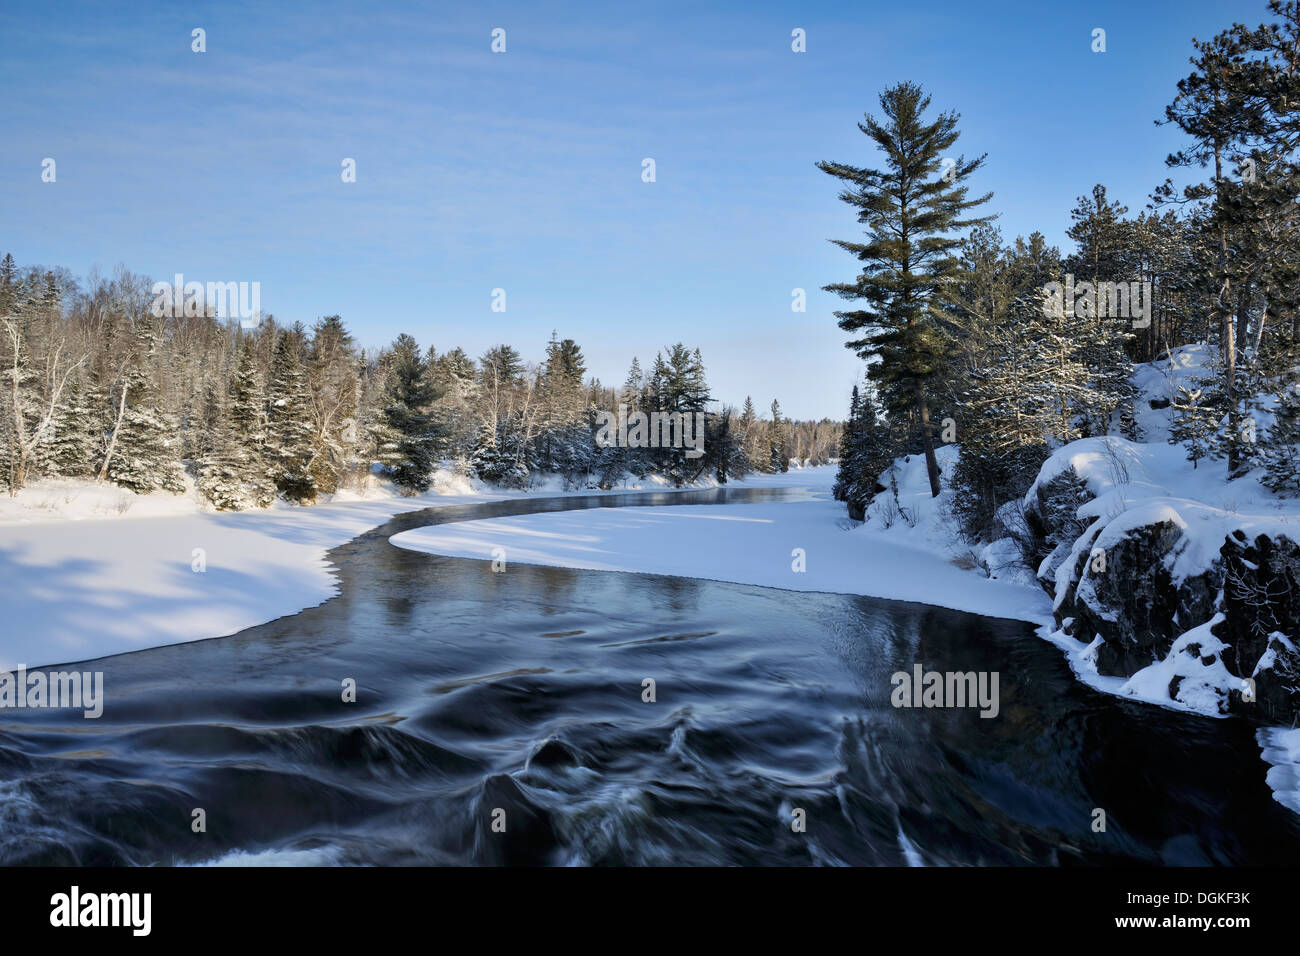 Open water of Wanapitei River and frosted pine trees in winter Wanup Ontario Canada - Stock Image